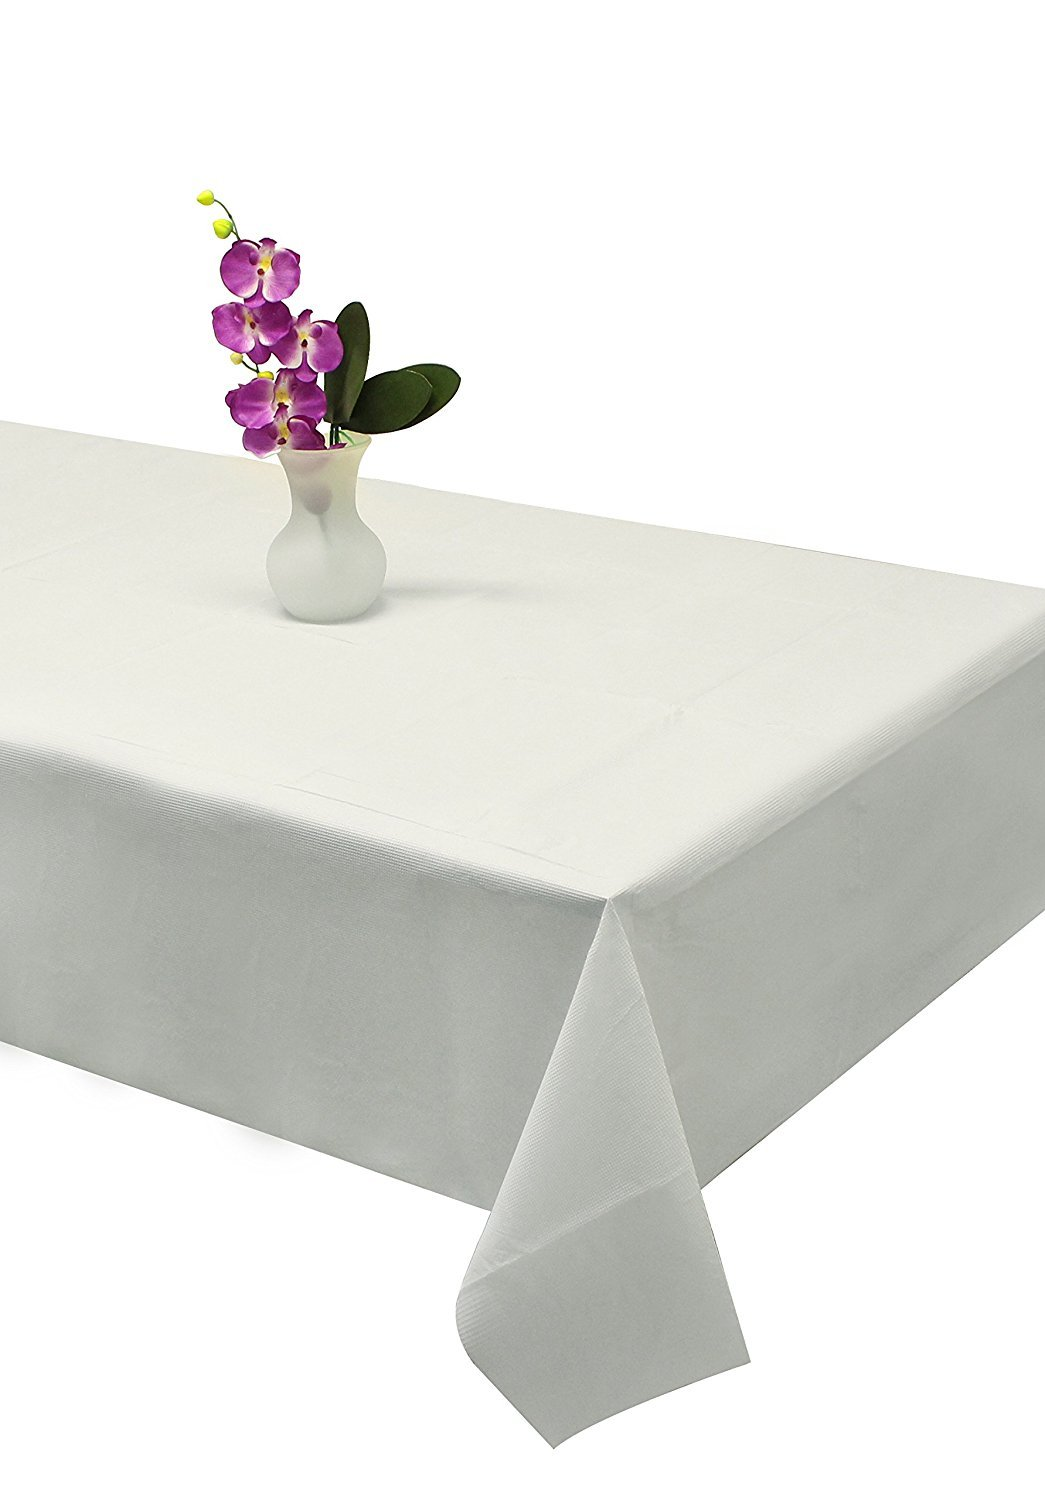 Party Bargains Disposable Table Cover | Classic White Paper 3 Ply Premium & Elegant Plastic Table Covers - Size 54'' X 108'' | Pack of 5 by Party Bargains (Image #2)